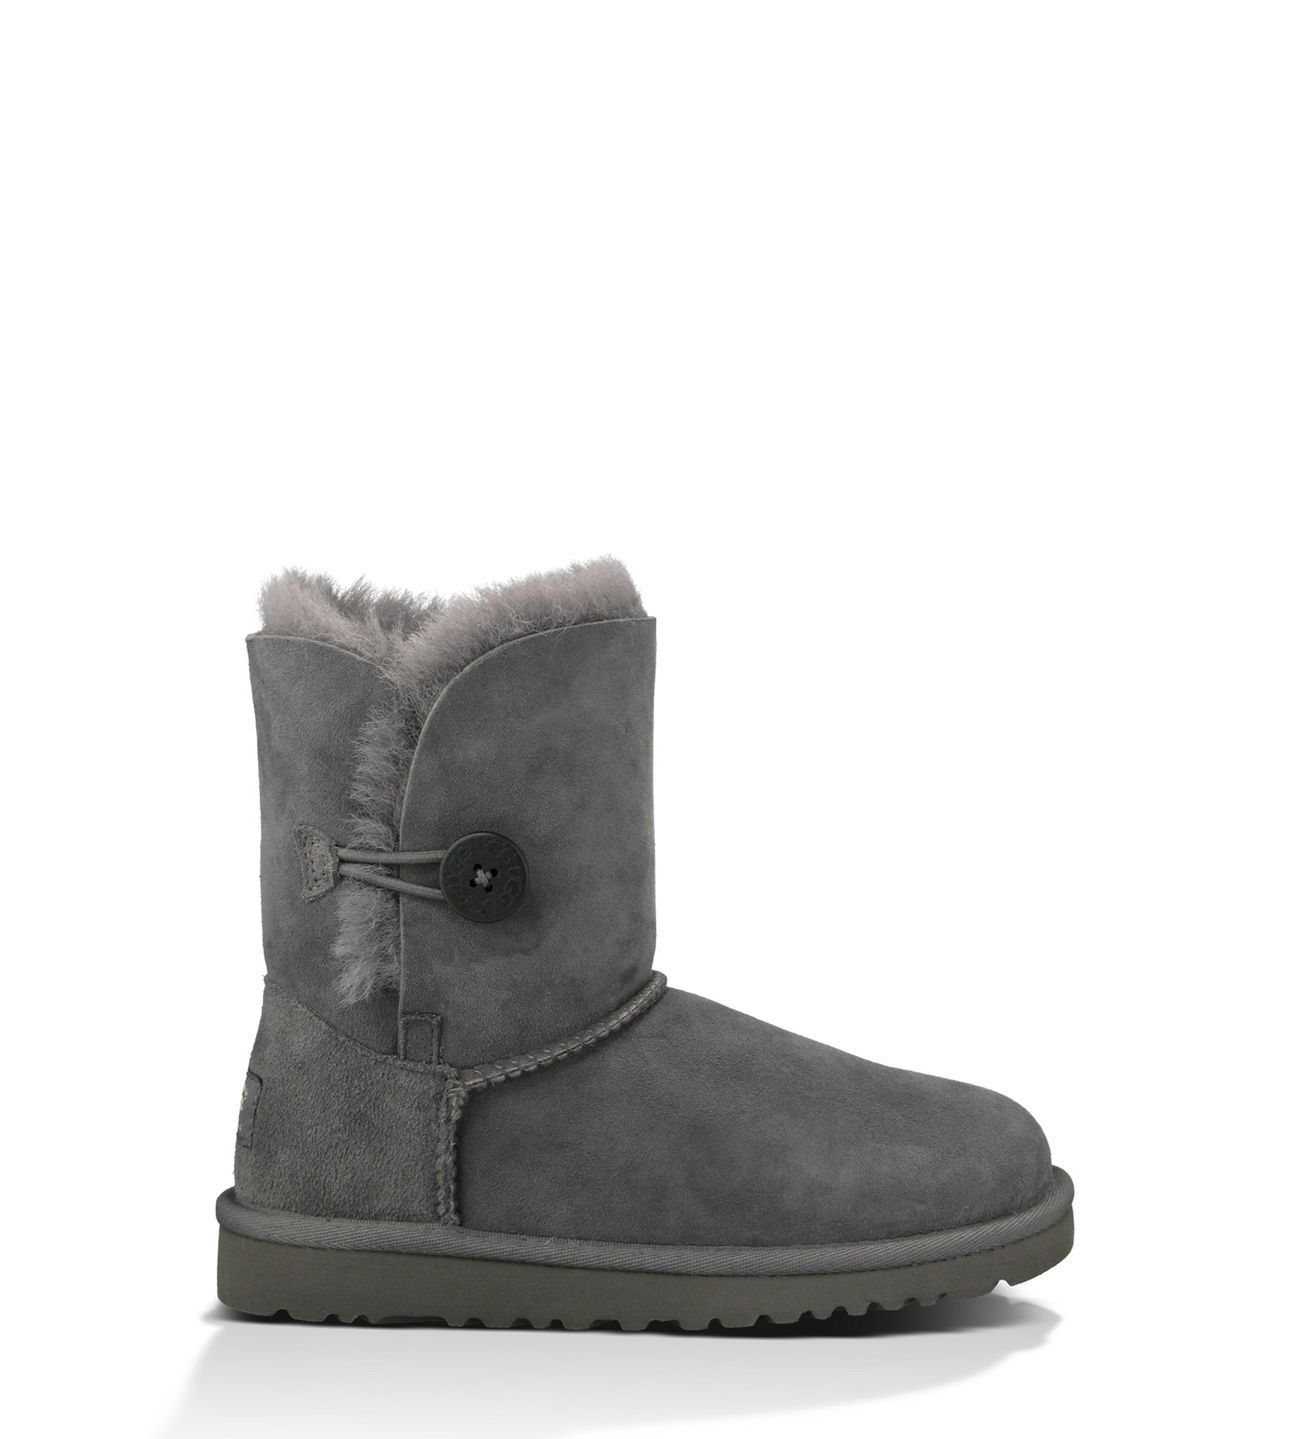 outlet store 5eb44 63785 UGG Australia Bailey Button Boot - Grey (Kids)